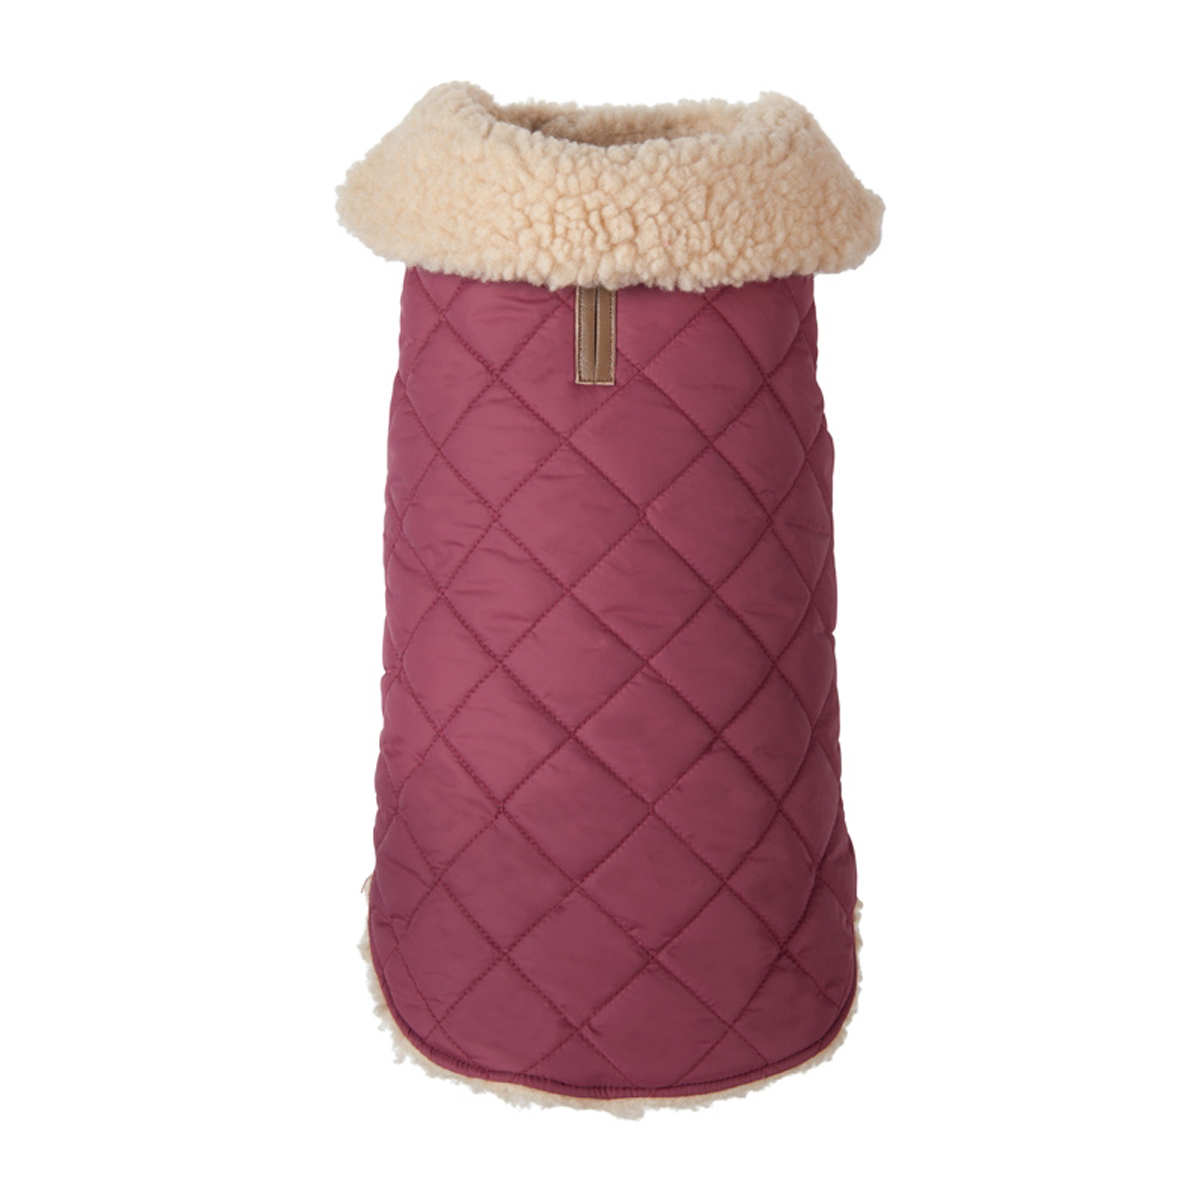 Quilted Shearling Dog Jacket - Burgundy